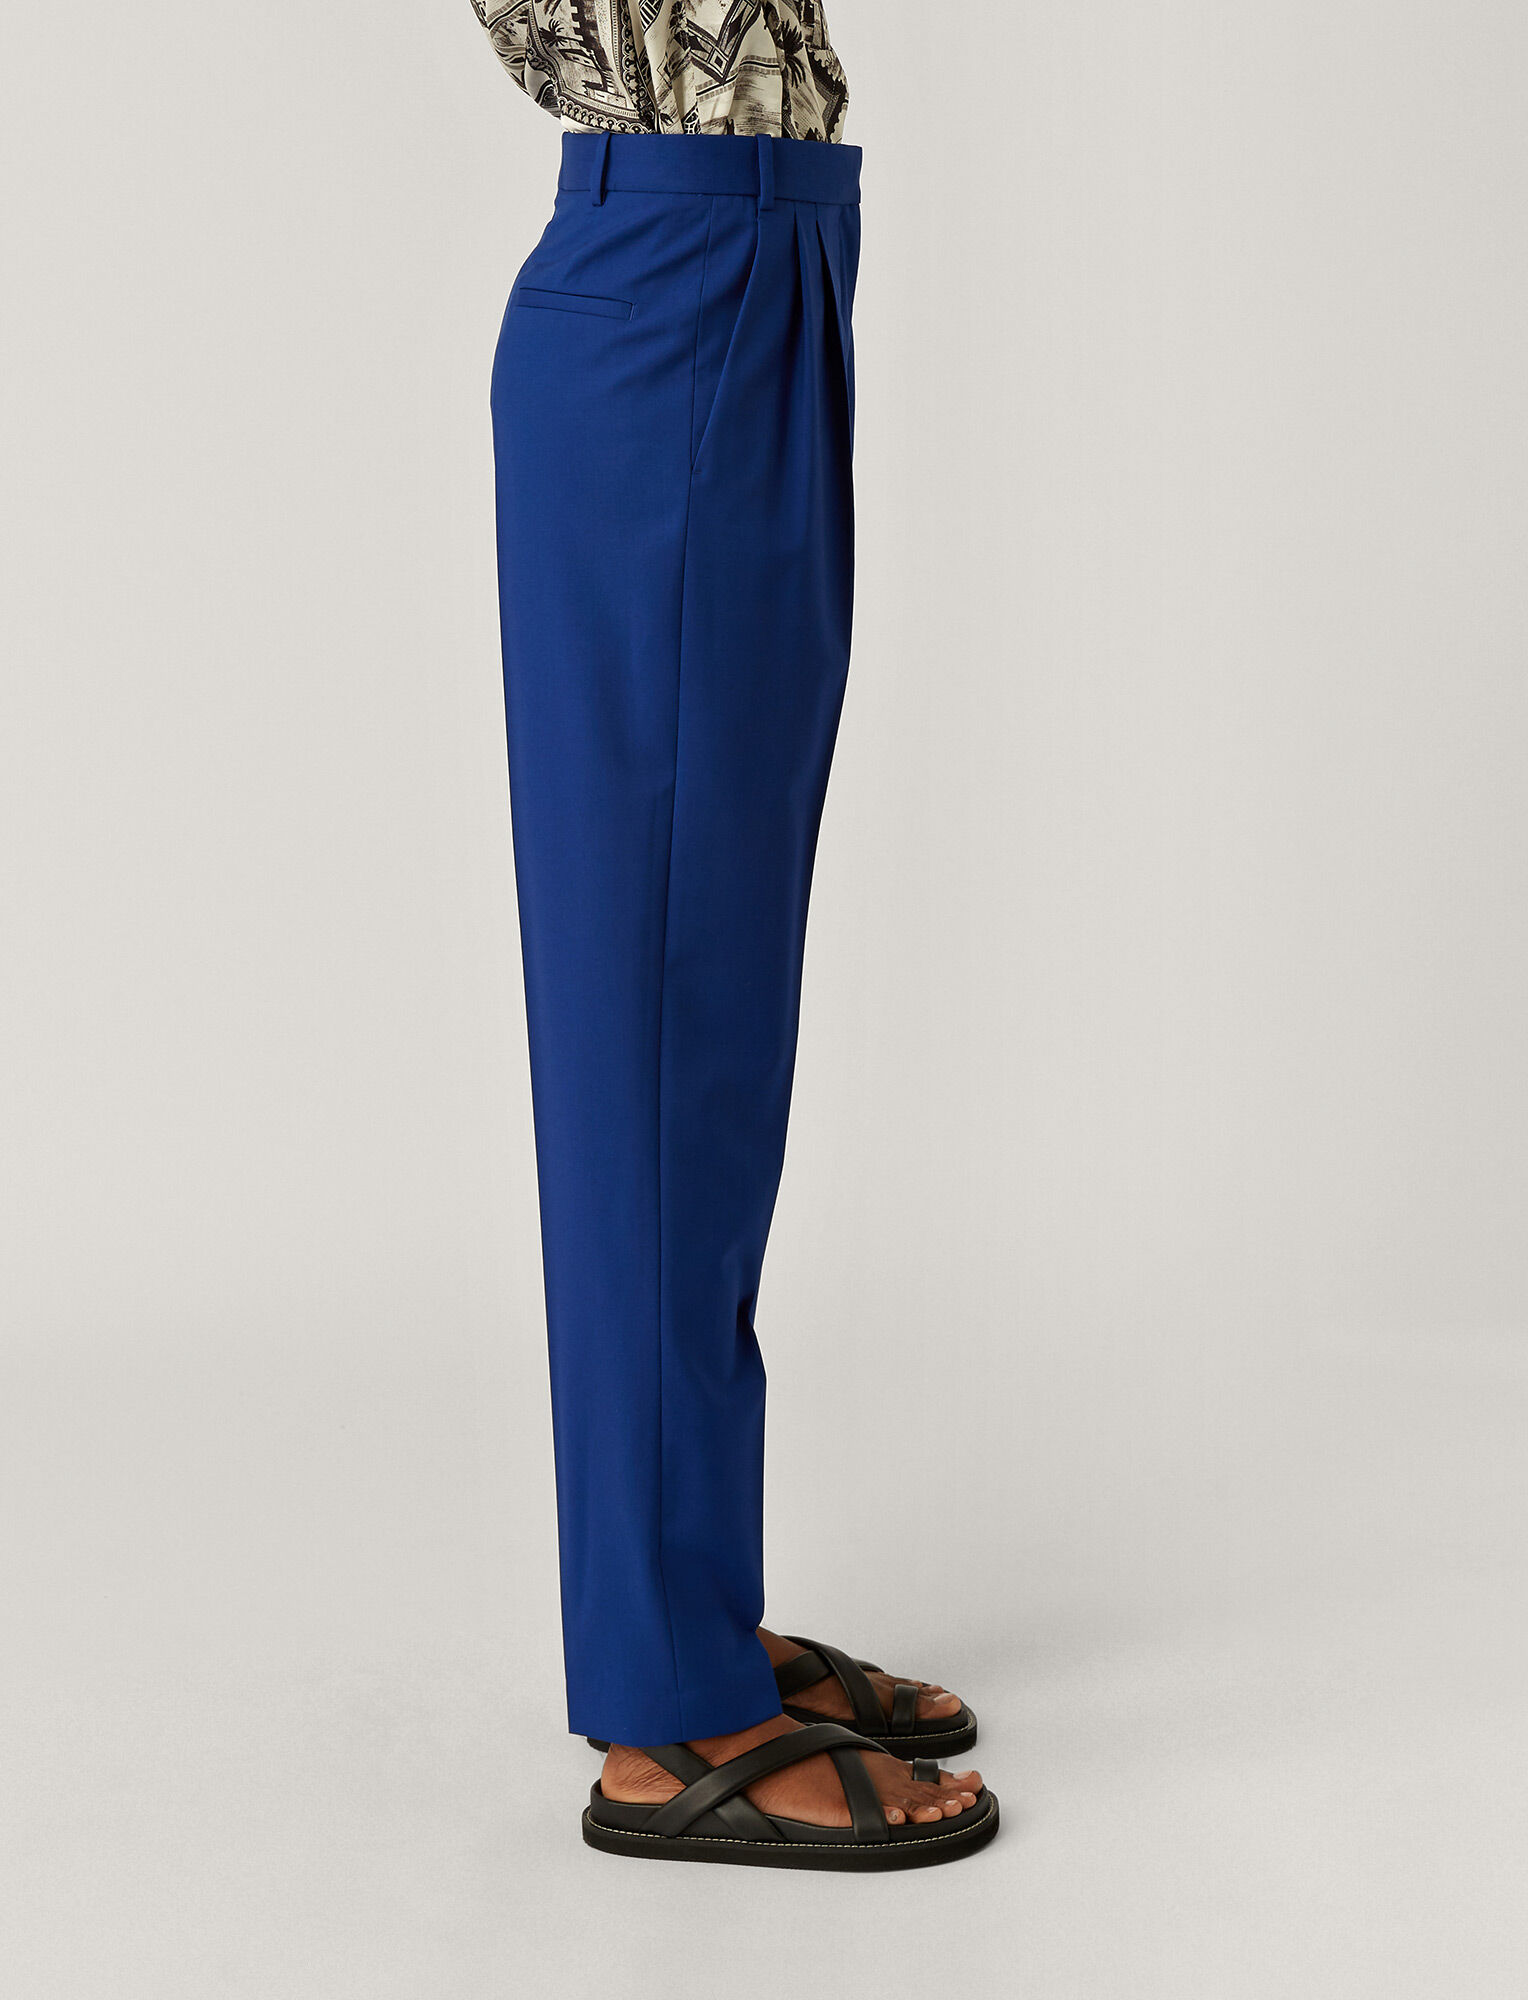 Joseph, Fender Toile de Laine Trousers, in KLEIN